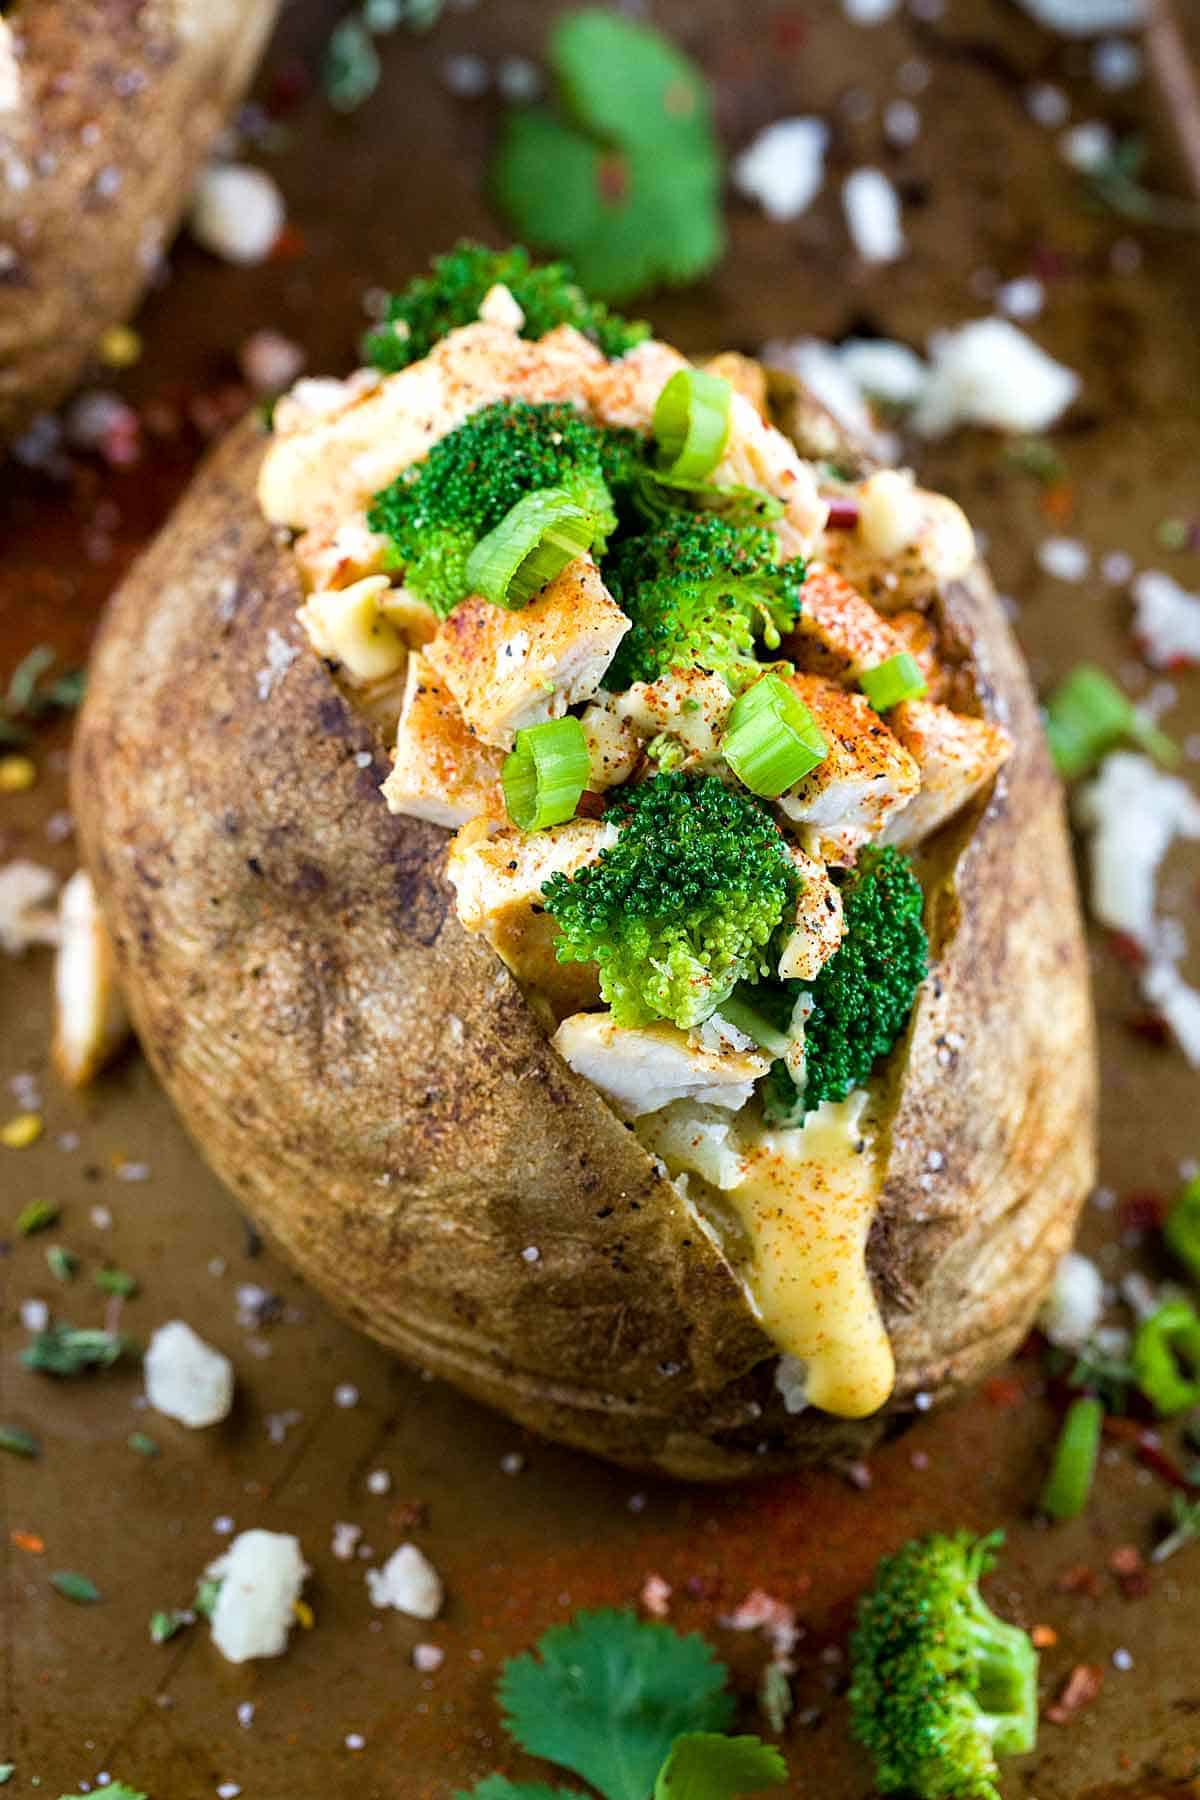 Chicken Broccoli Stuffed Baked Potato with Cheese Sauce - A balanced meal of protein, vegetables and carbohydrates all in one crispy roasted potato! | jessicagavin.com